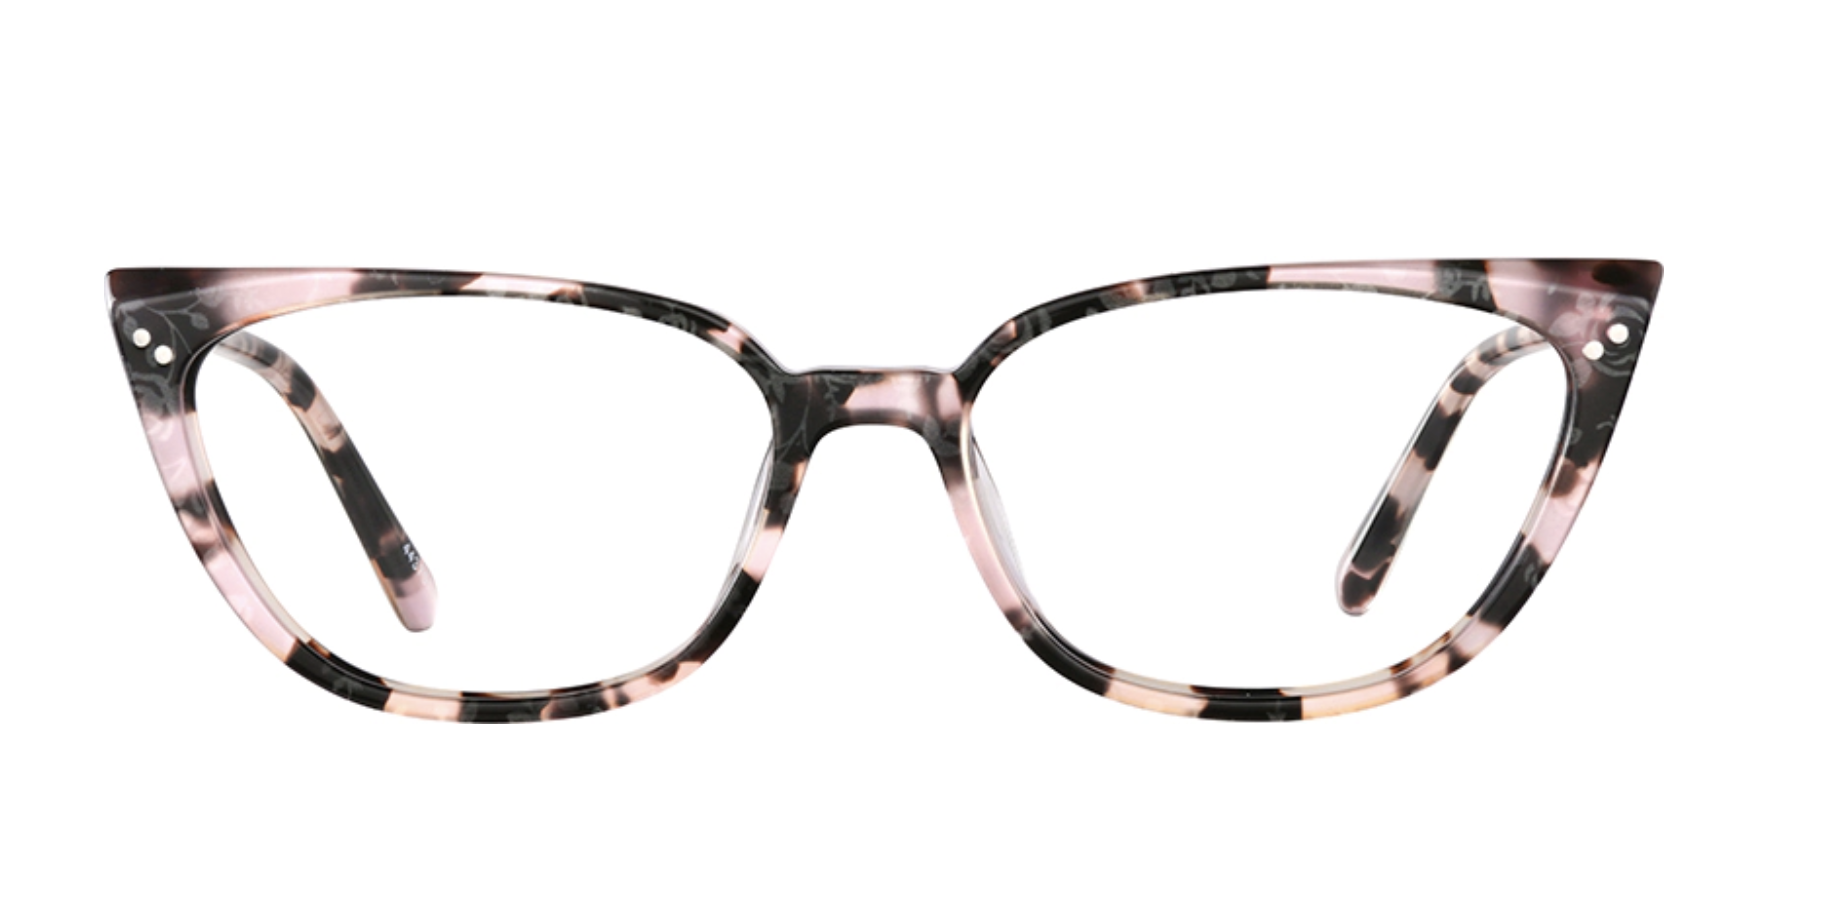 A pair of pink and black tortoise shell cat eye glasses